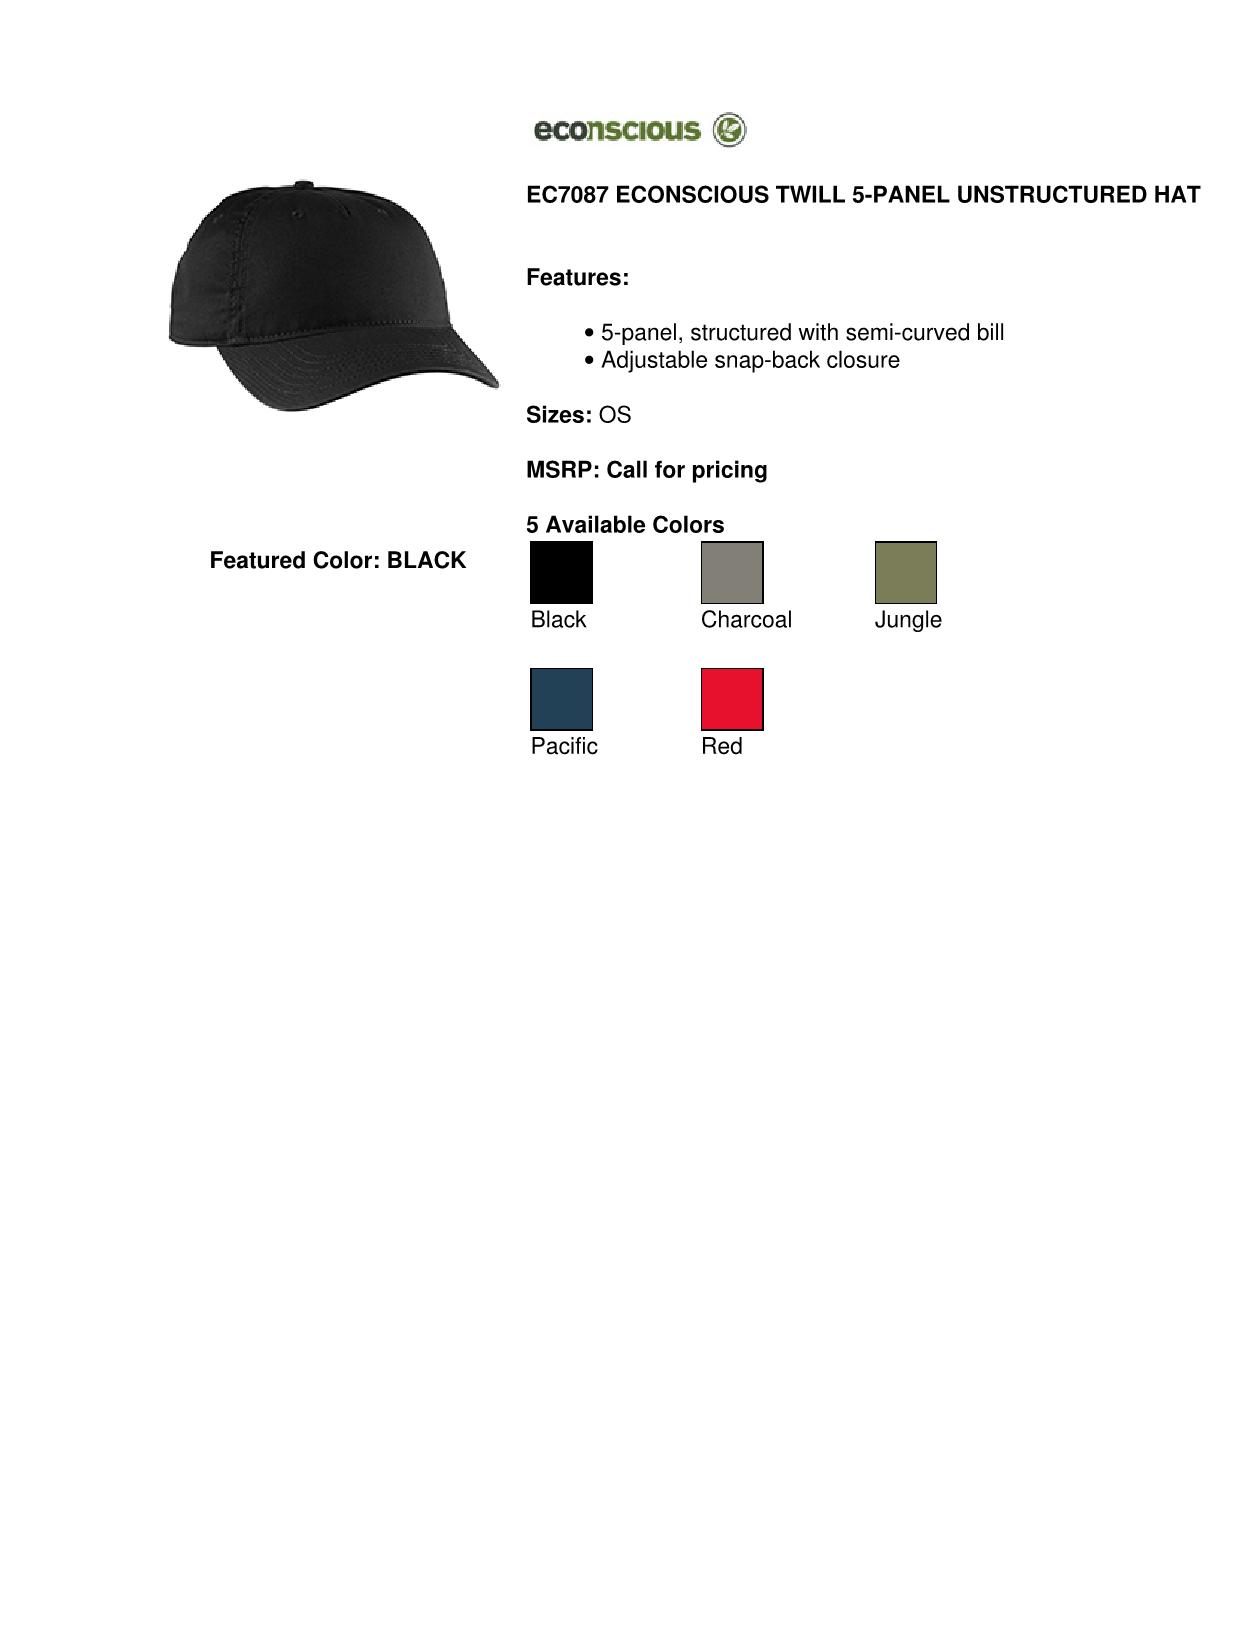 dcfd763e0c8fc econscious EC7087 Twill 5-Panel Unstructured Hat - Charcoal - One Size -  Walmart.com